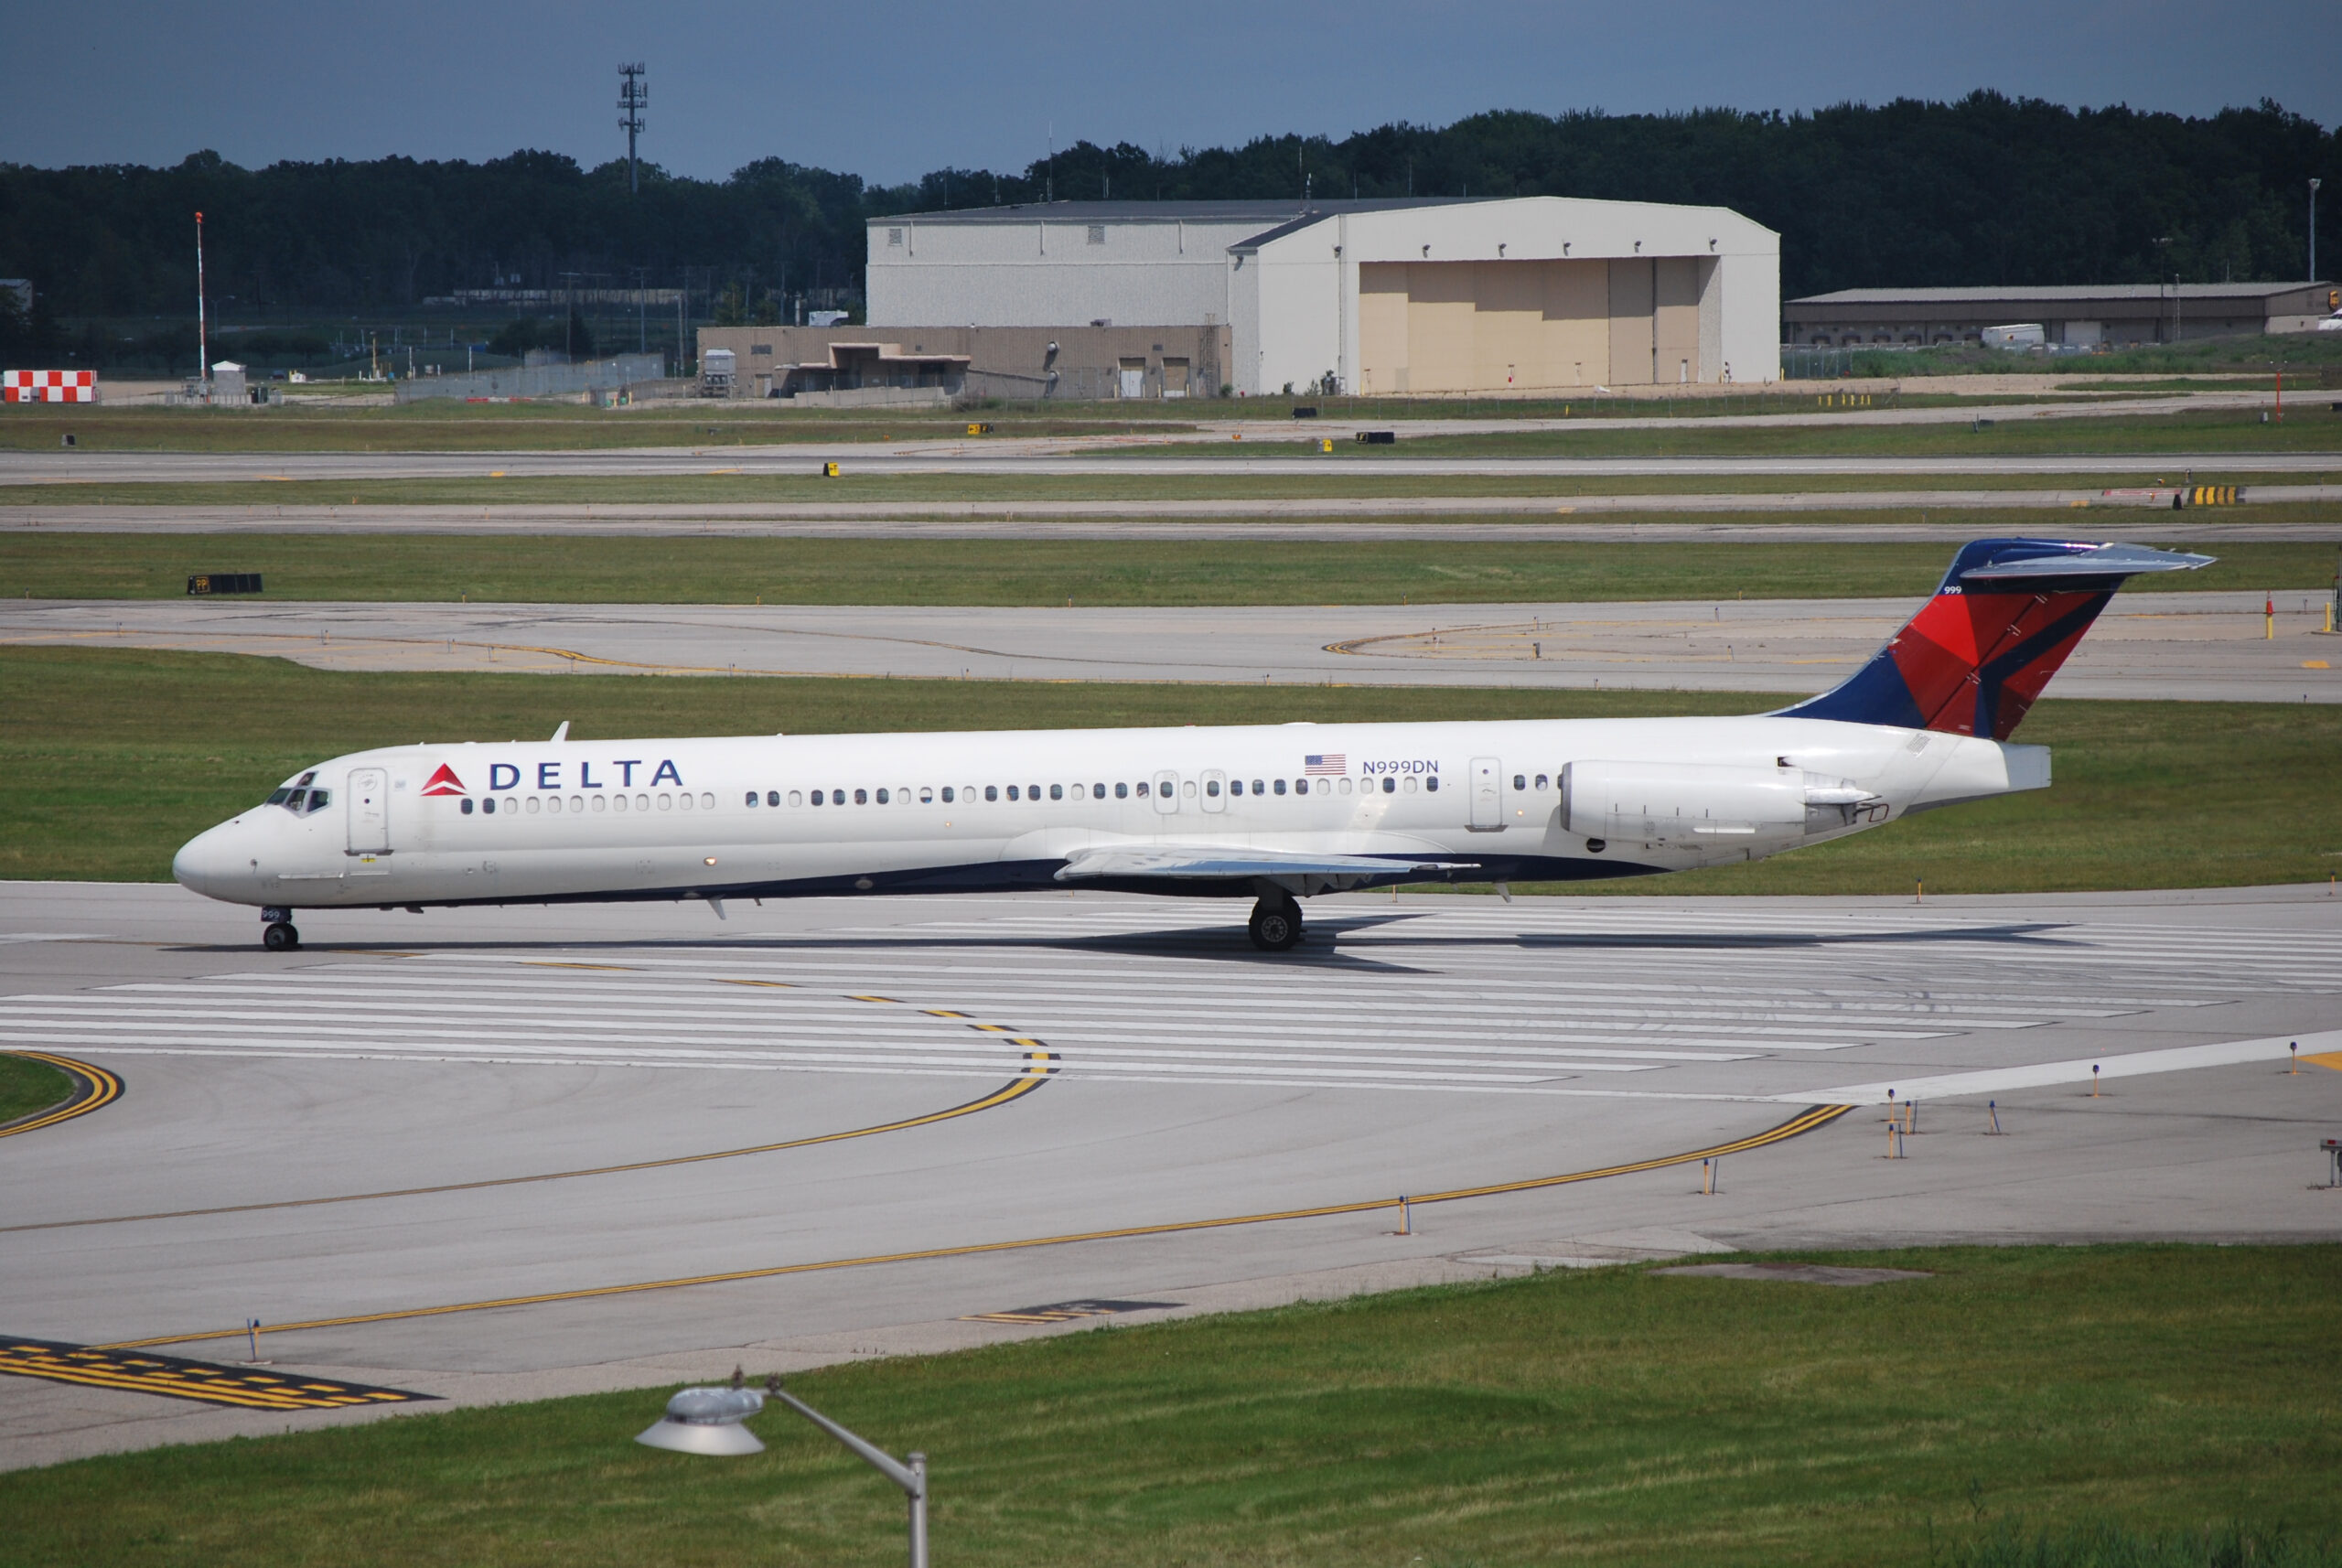 Delta Air Lines McDonnell Douglas MD-88 was taking off from Detroit Metropolitan Airport.